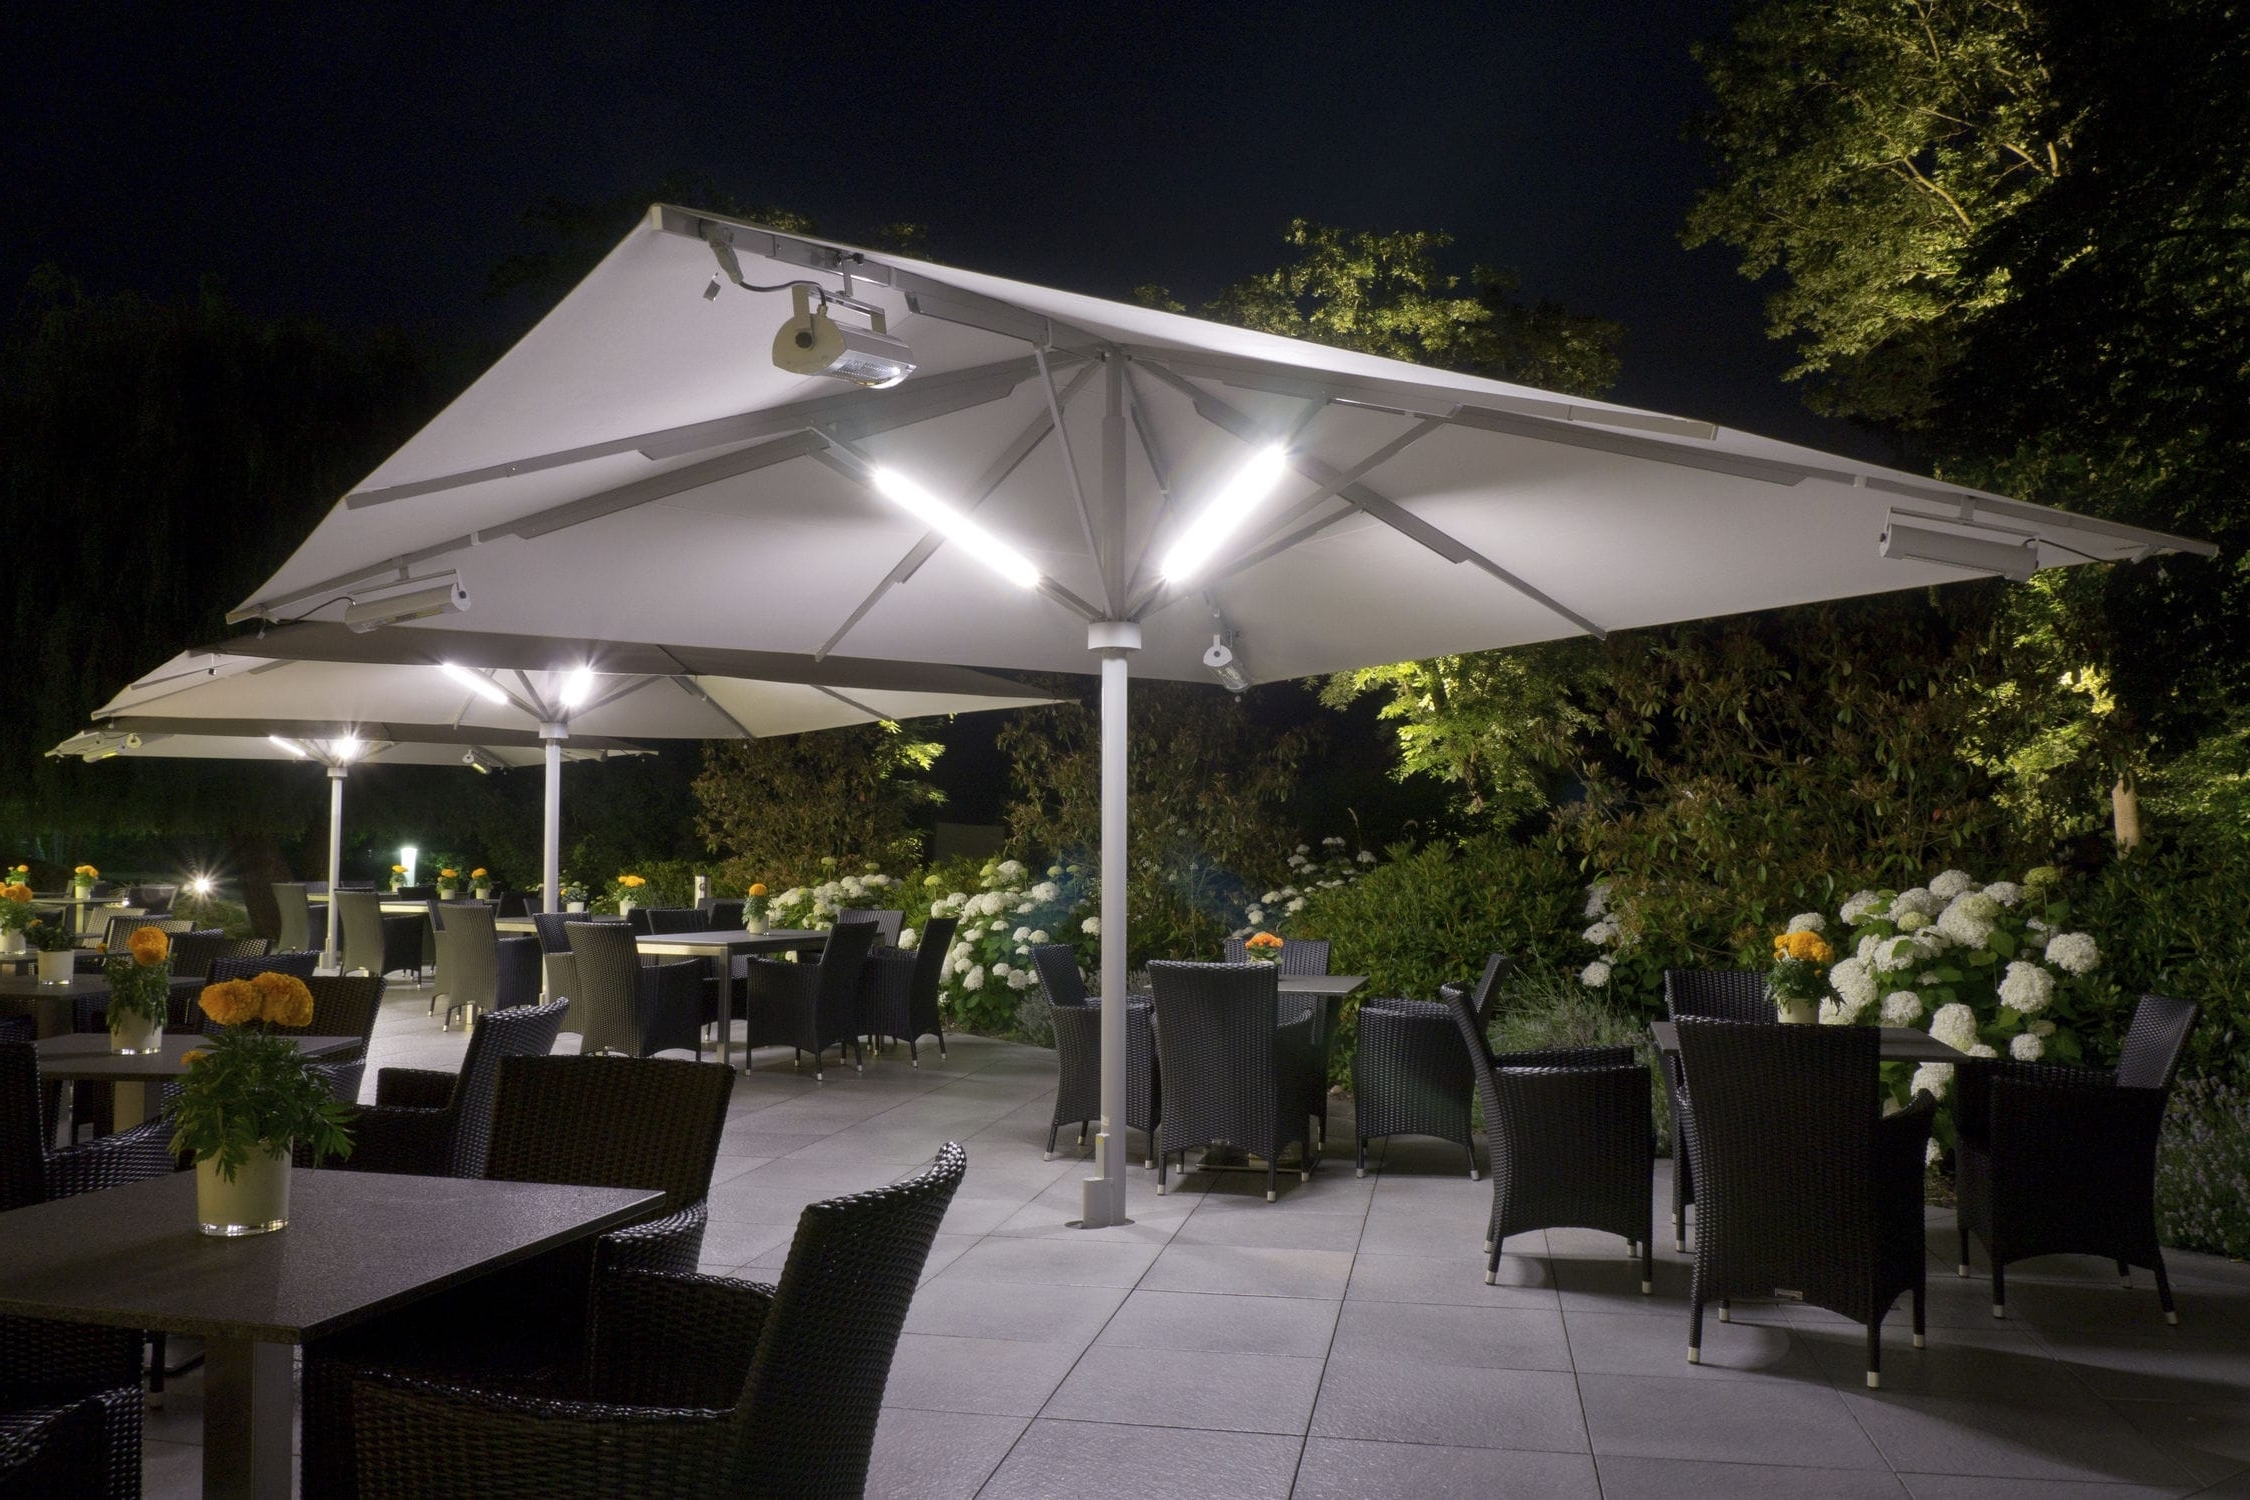 Solar Powered Lights For Patio Umbrellas • Patio Ideas Inside Famous European Patio Umbrellas (View 16 of 20)